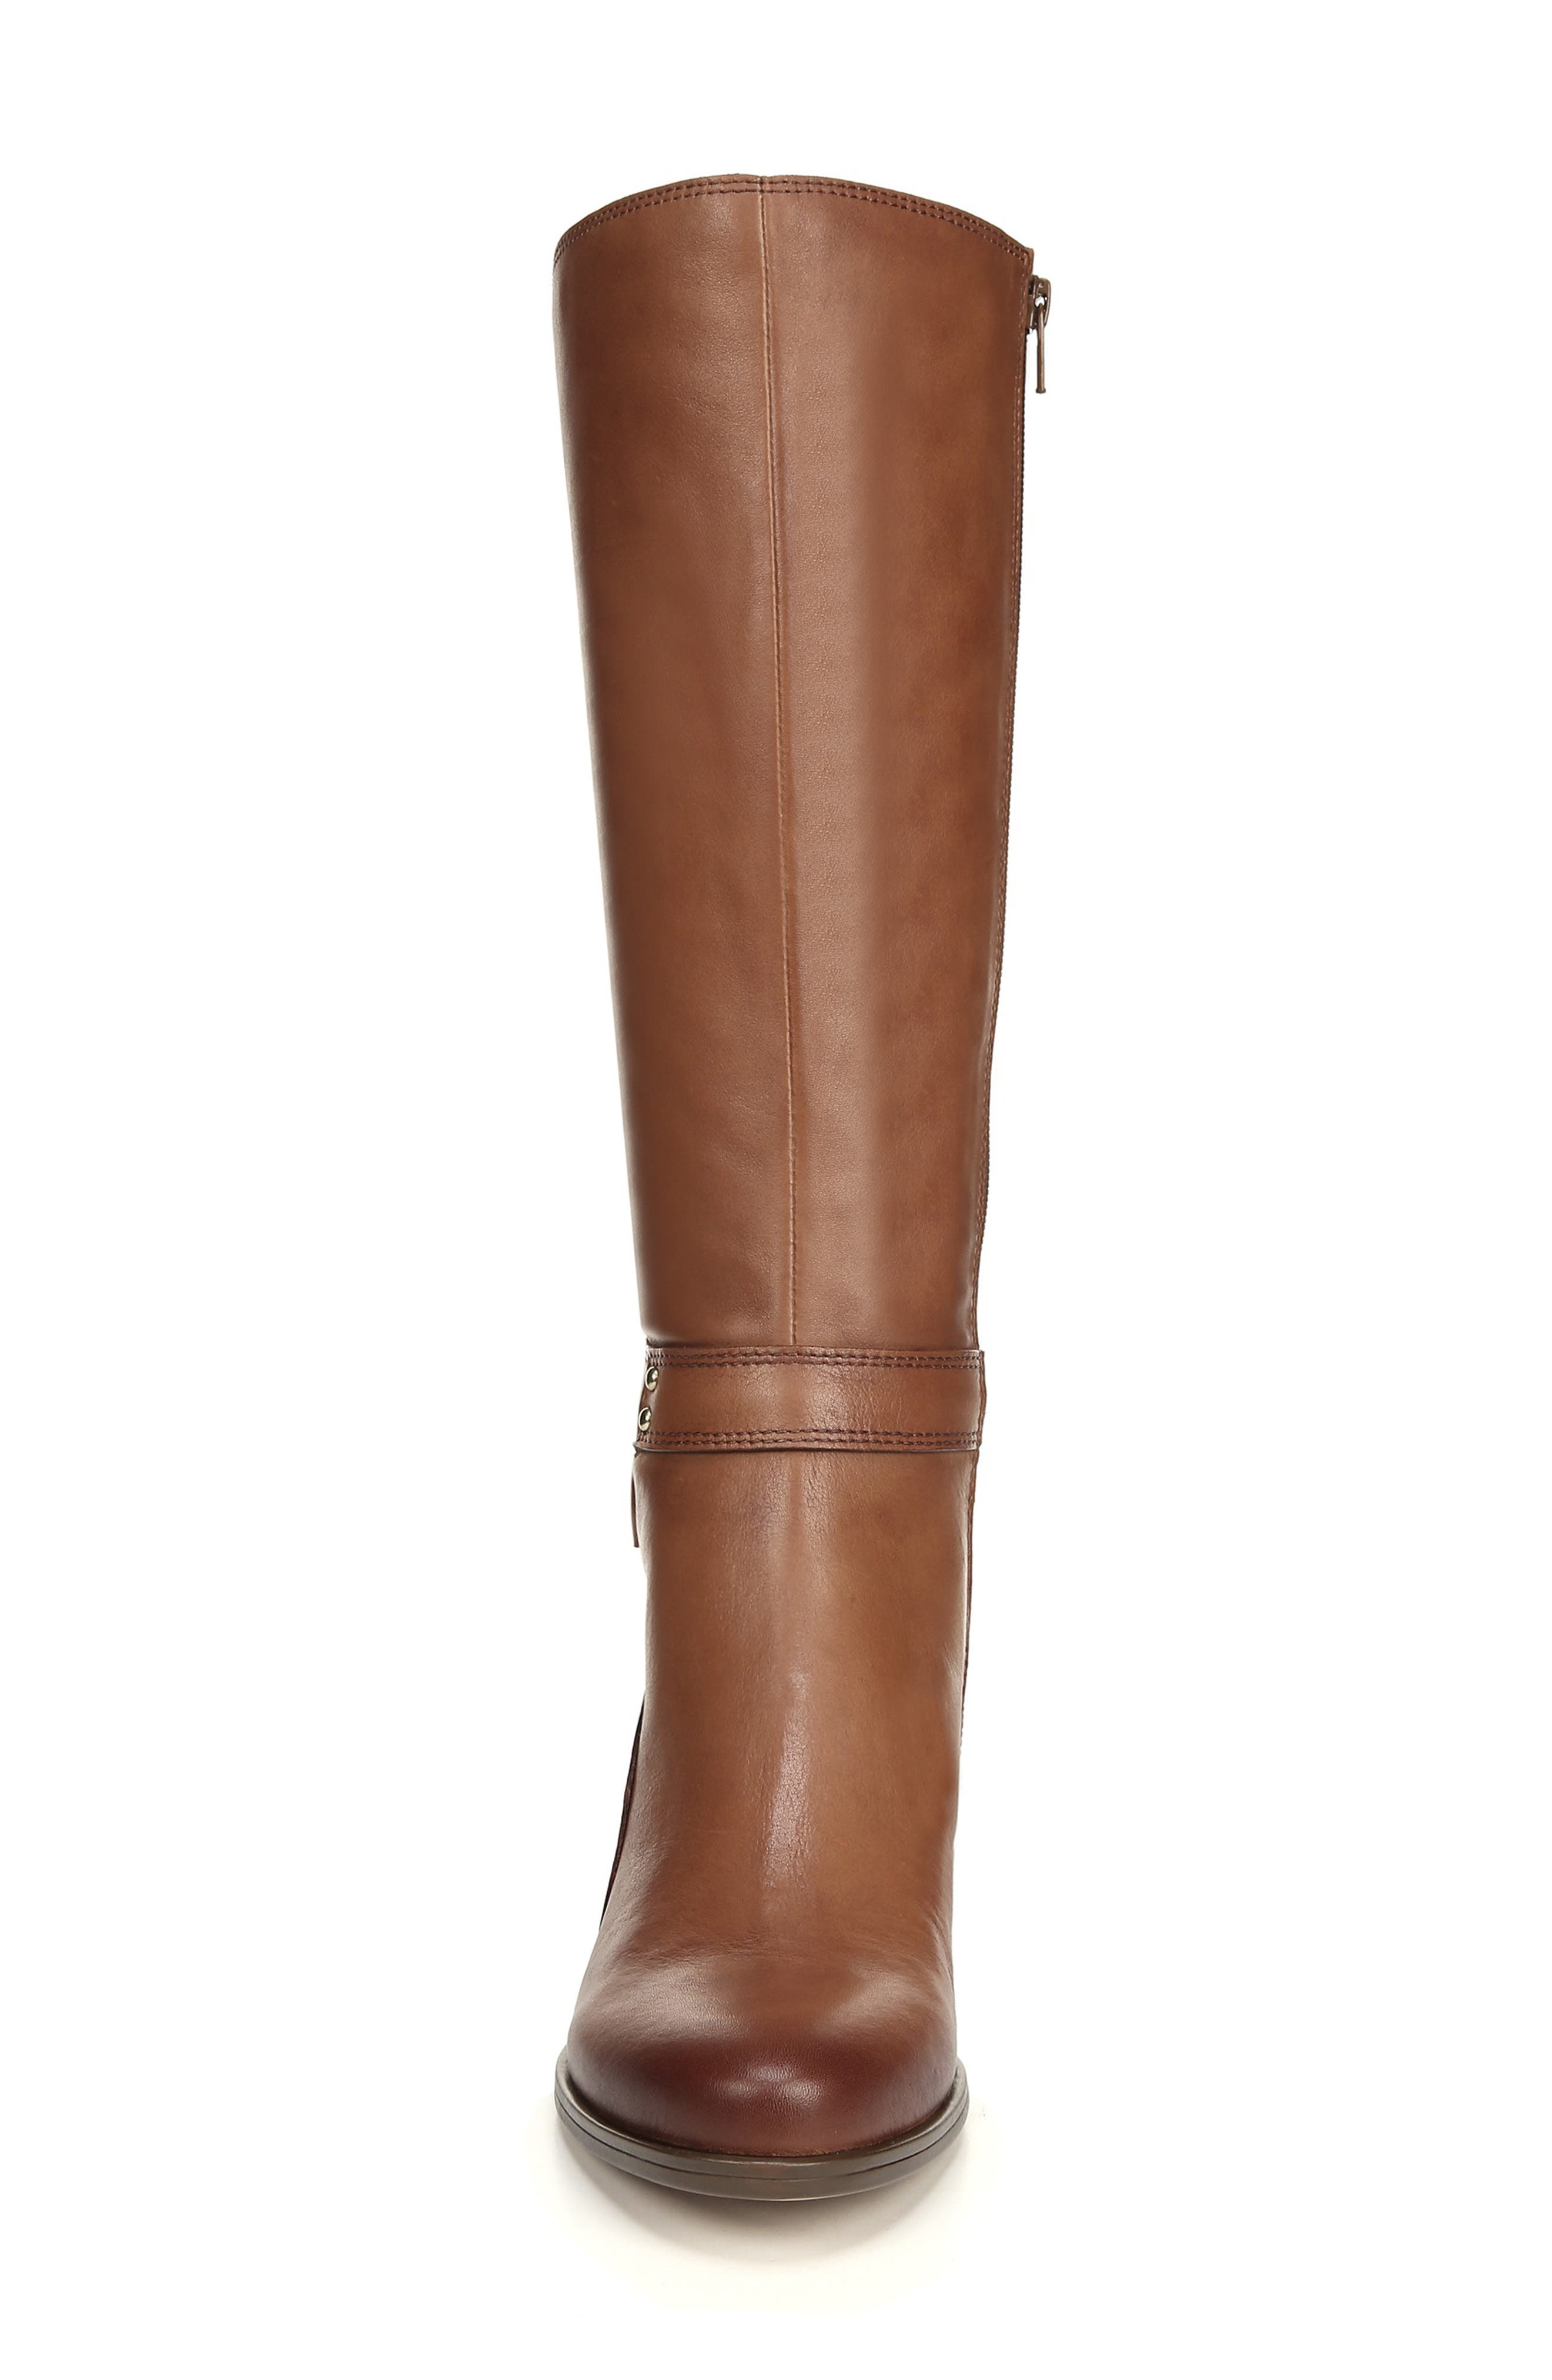 NATURALIZER, Dane Knee High Riding Boot, Alternate thumbnail 4, color, MAPLE LEATHER